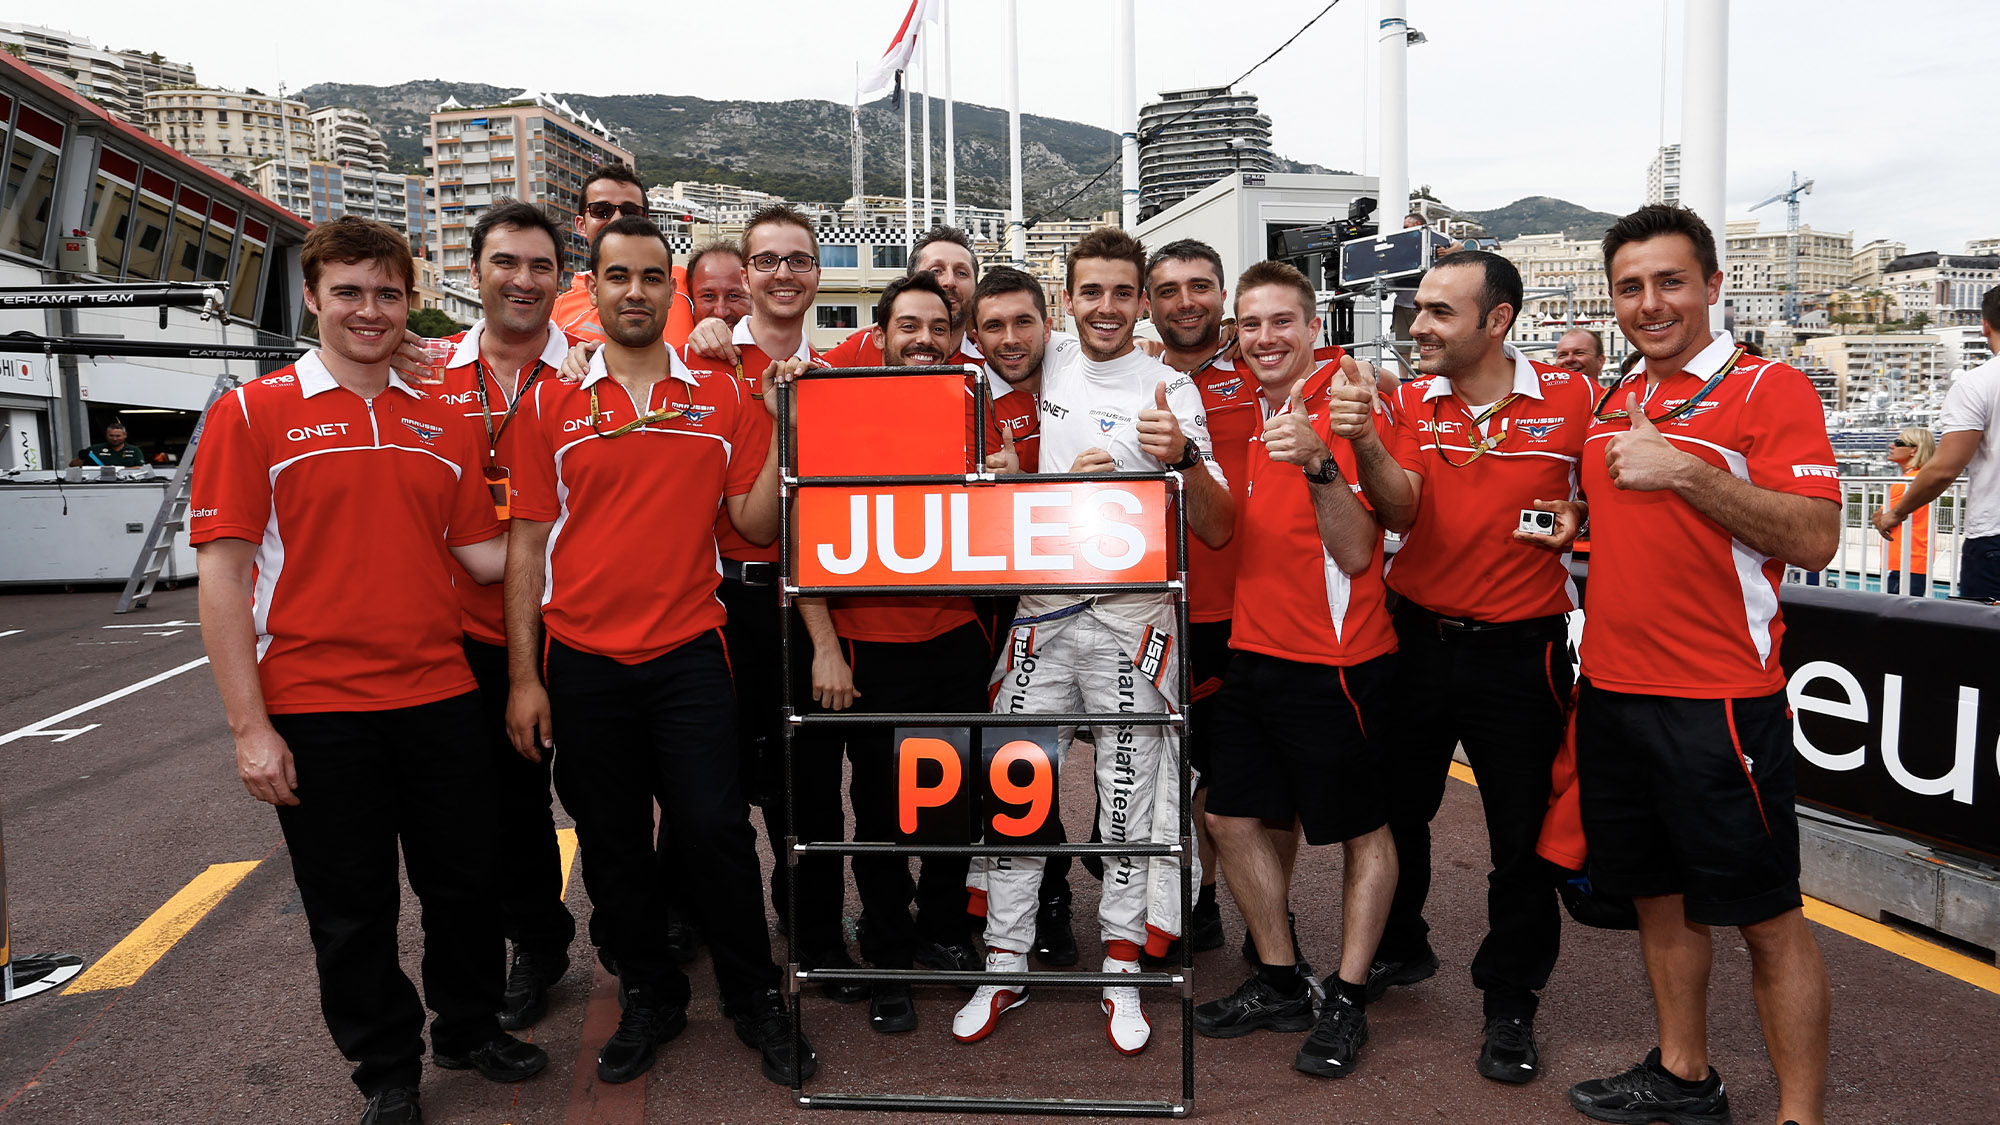 The Marussia team celebrates Jules Bianchi's ninth place at the 2014 Monaco Grand Prix